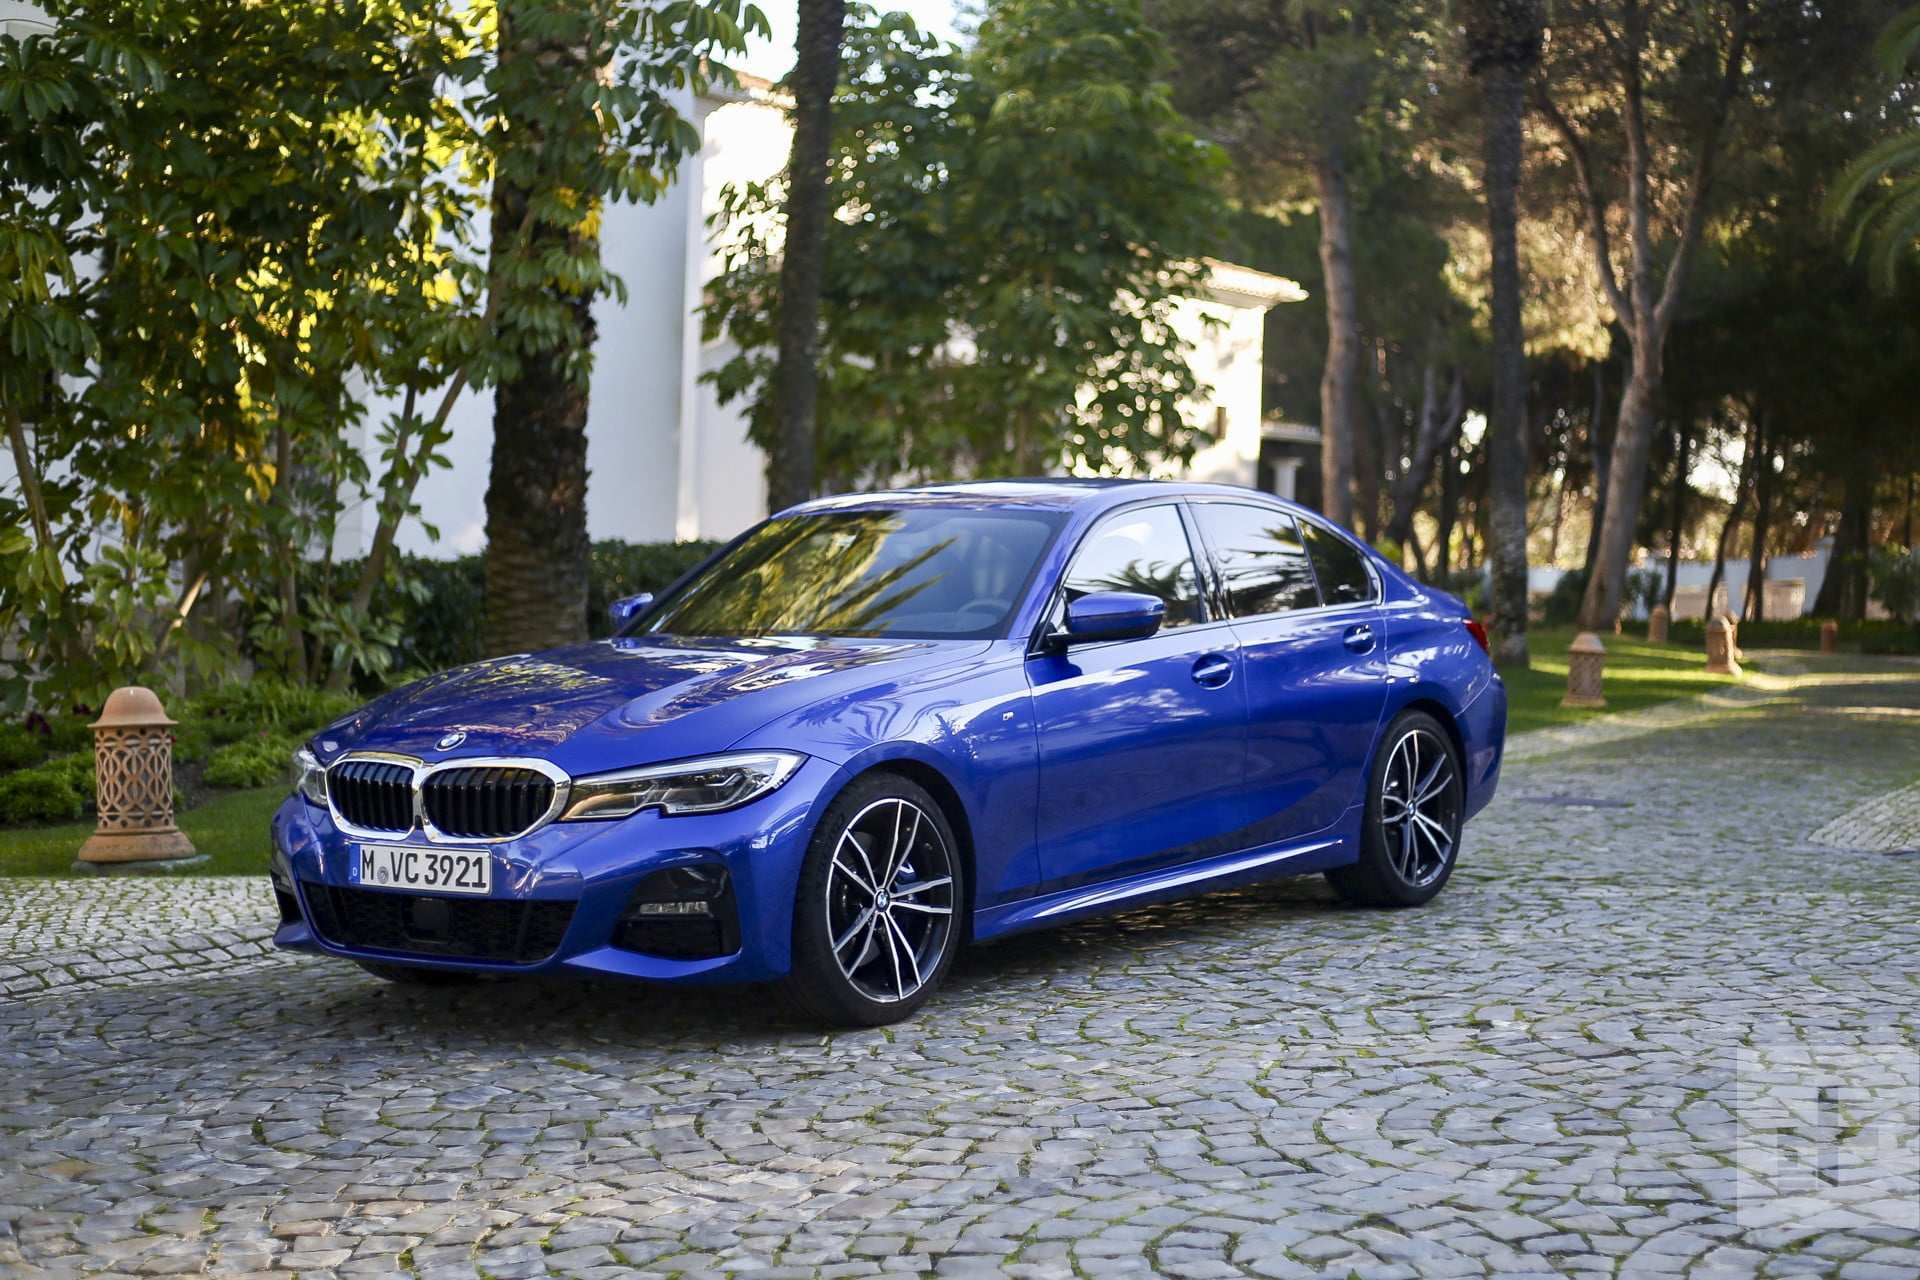 21 All New 2020 Bmw 3 Series Pricing